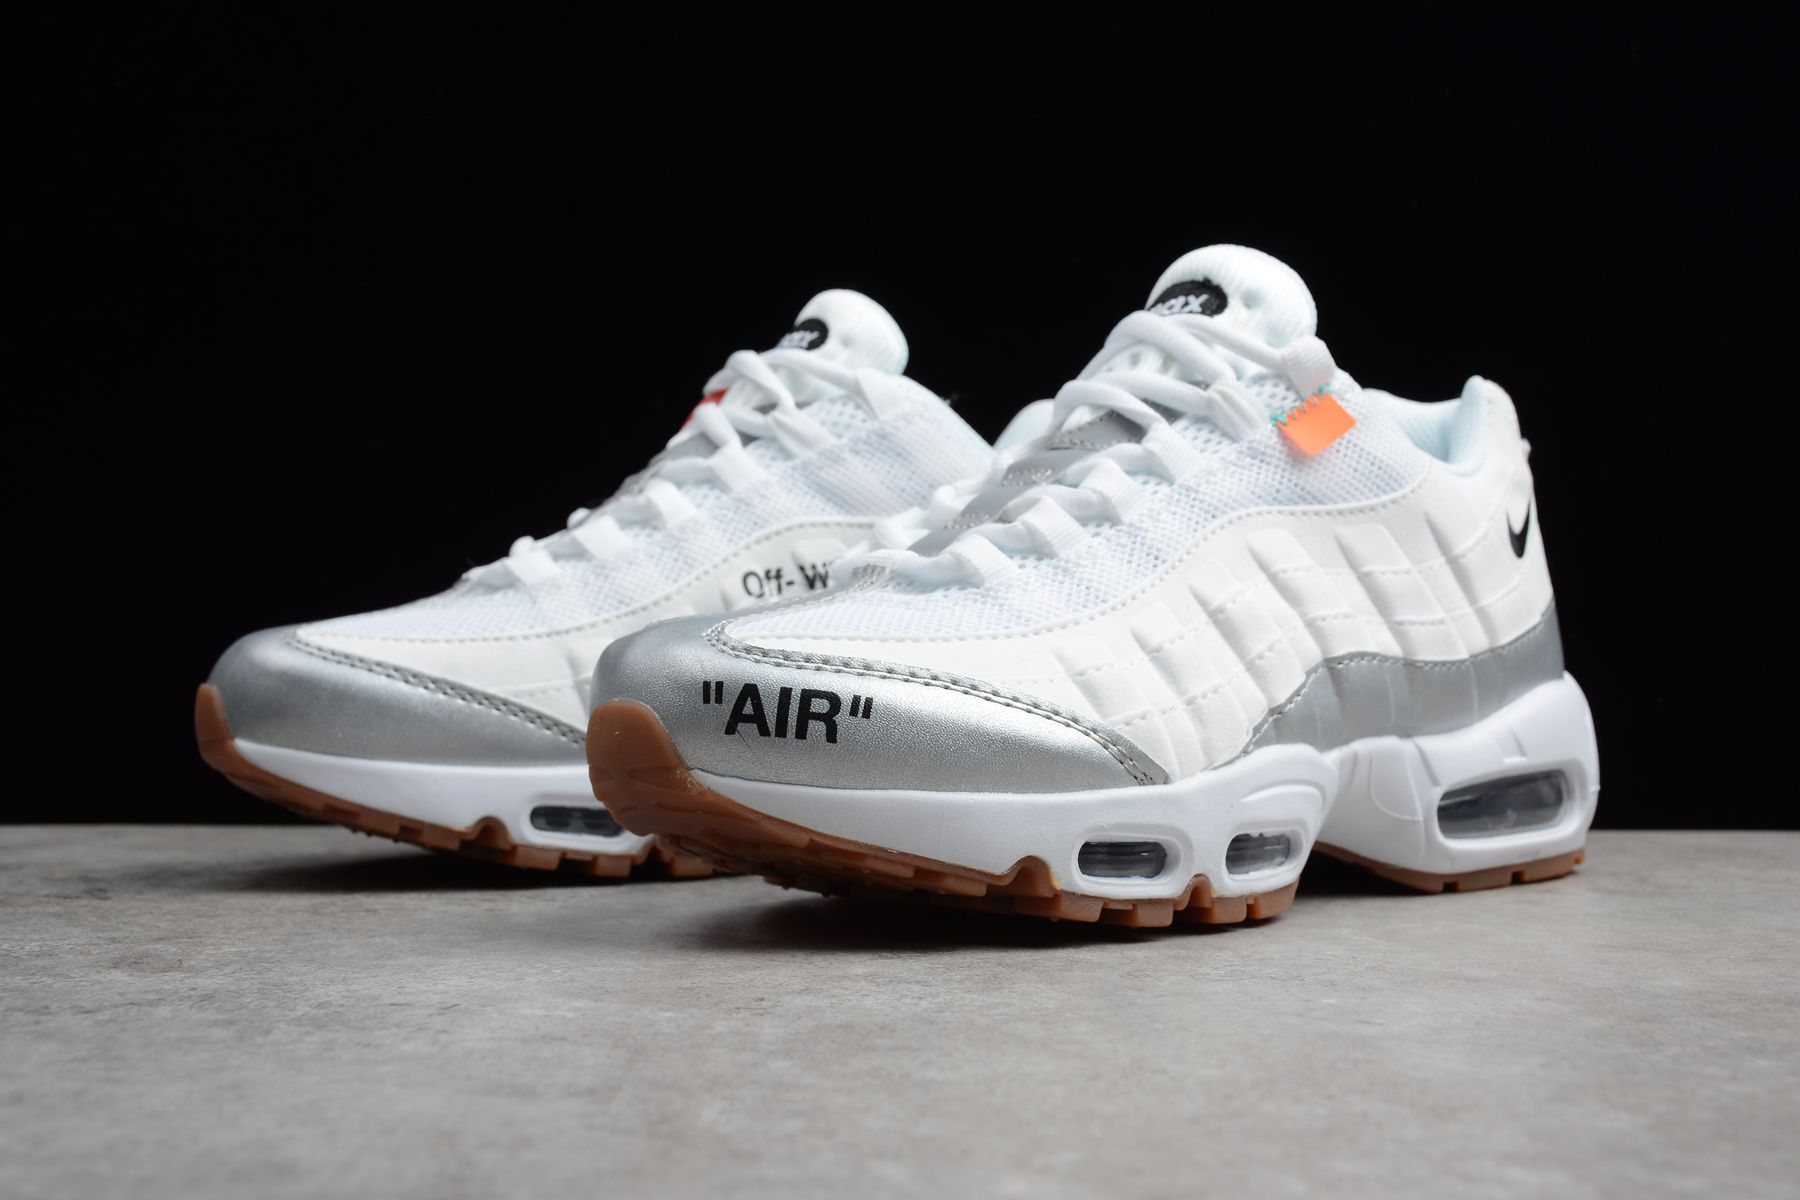 fb5444ae33 Off-White x Nike Air Max 95 White Silver Men's Size 609048-159 ...